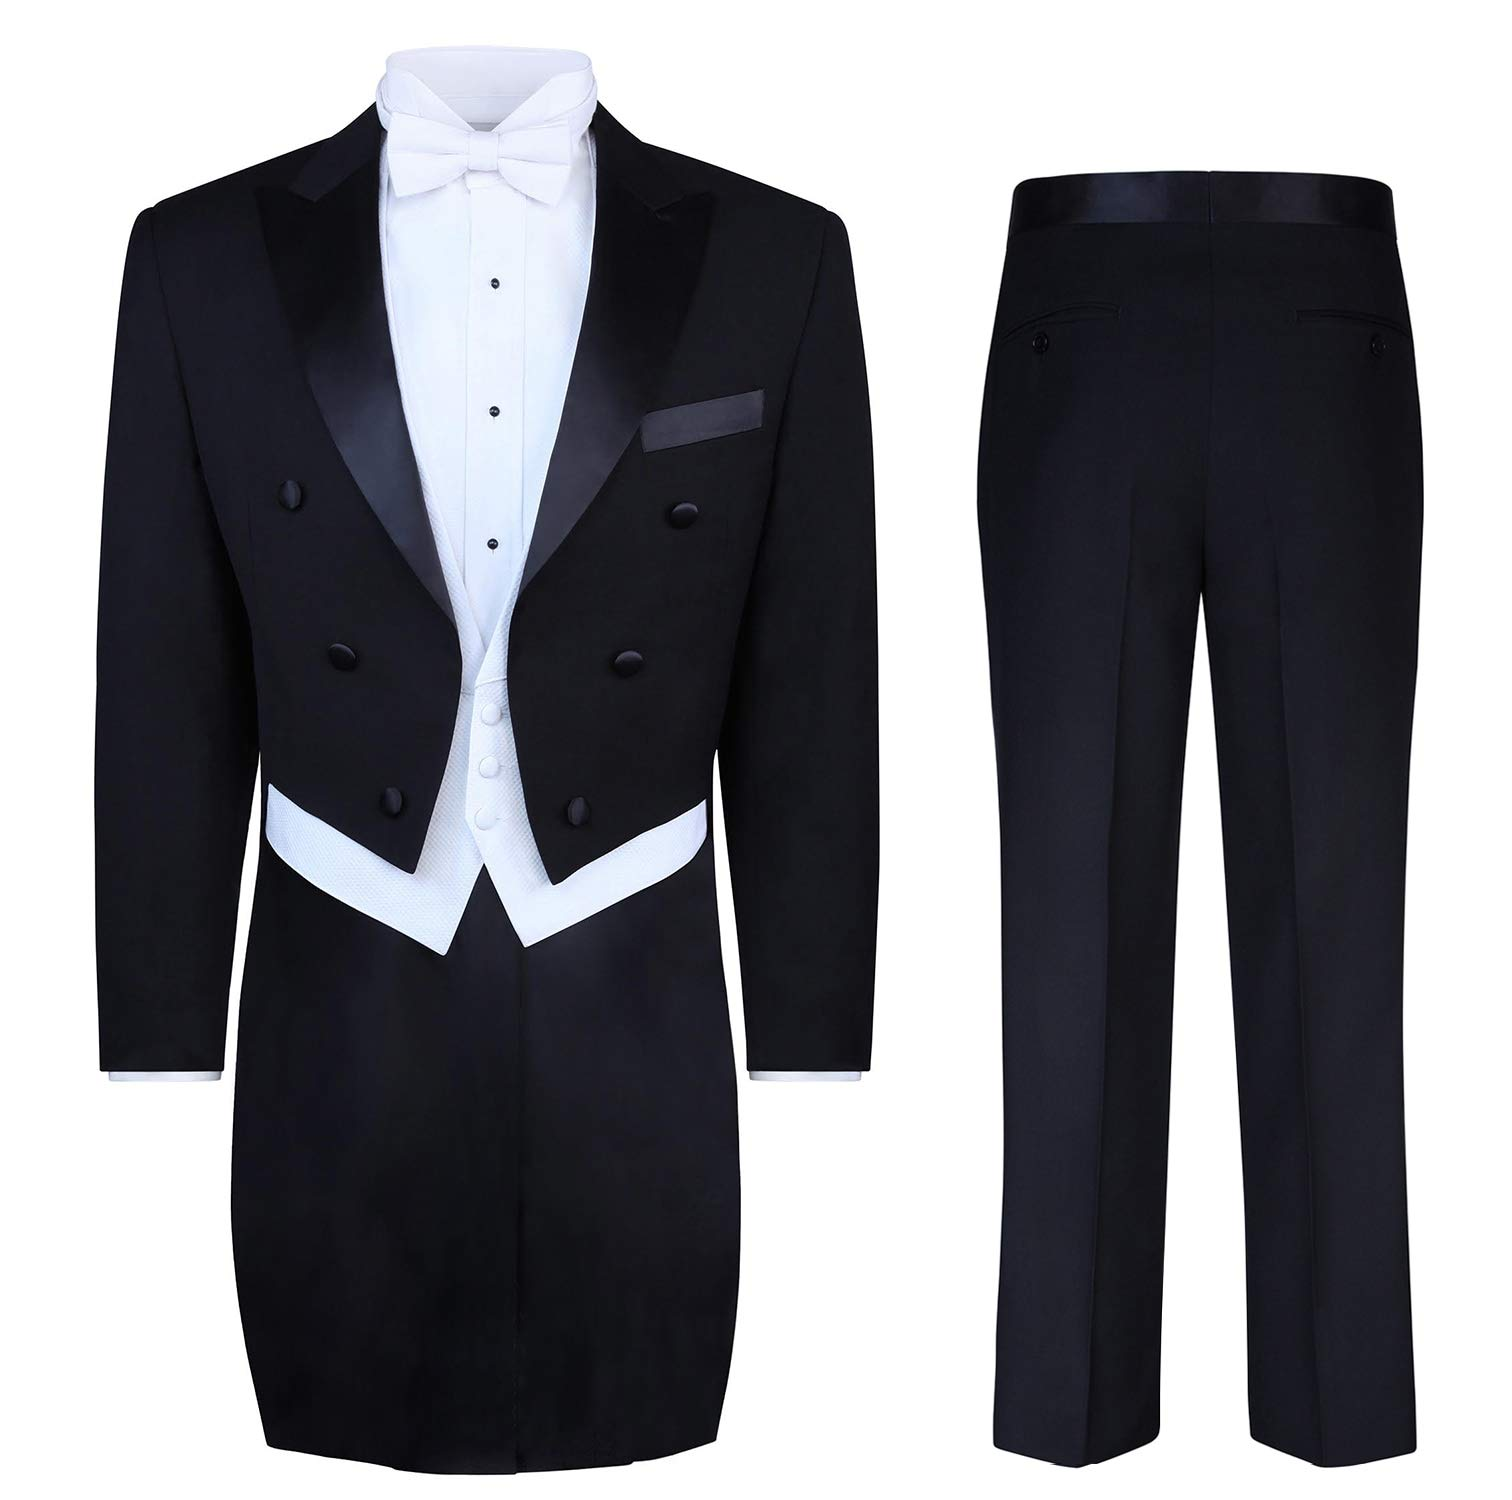 S.H. Churchill & Co. Black Tailcoat Tuxedo & Tuxedo Pants - 52 Regular by S.H. Churchill & Co.